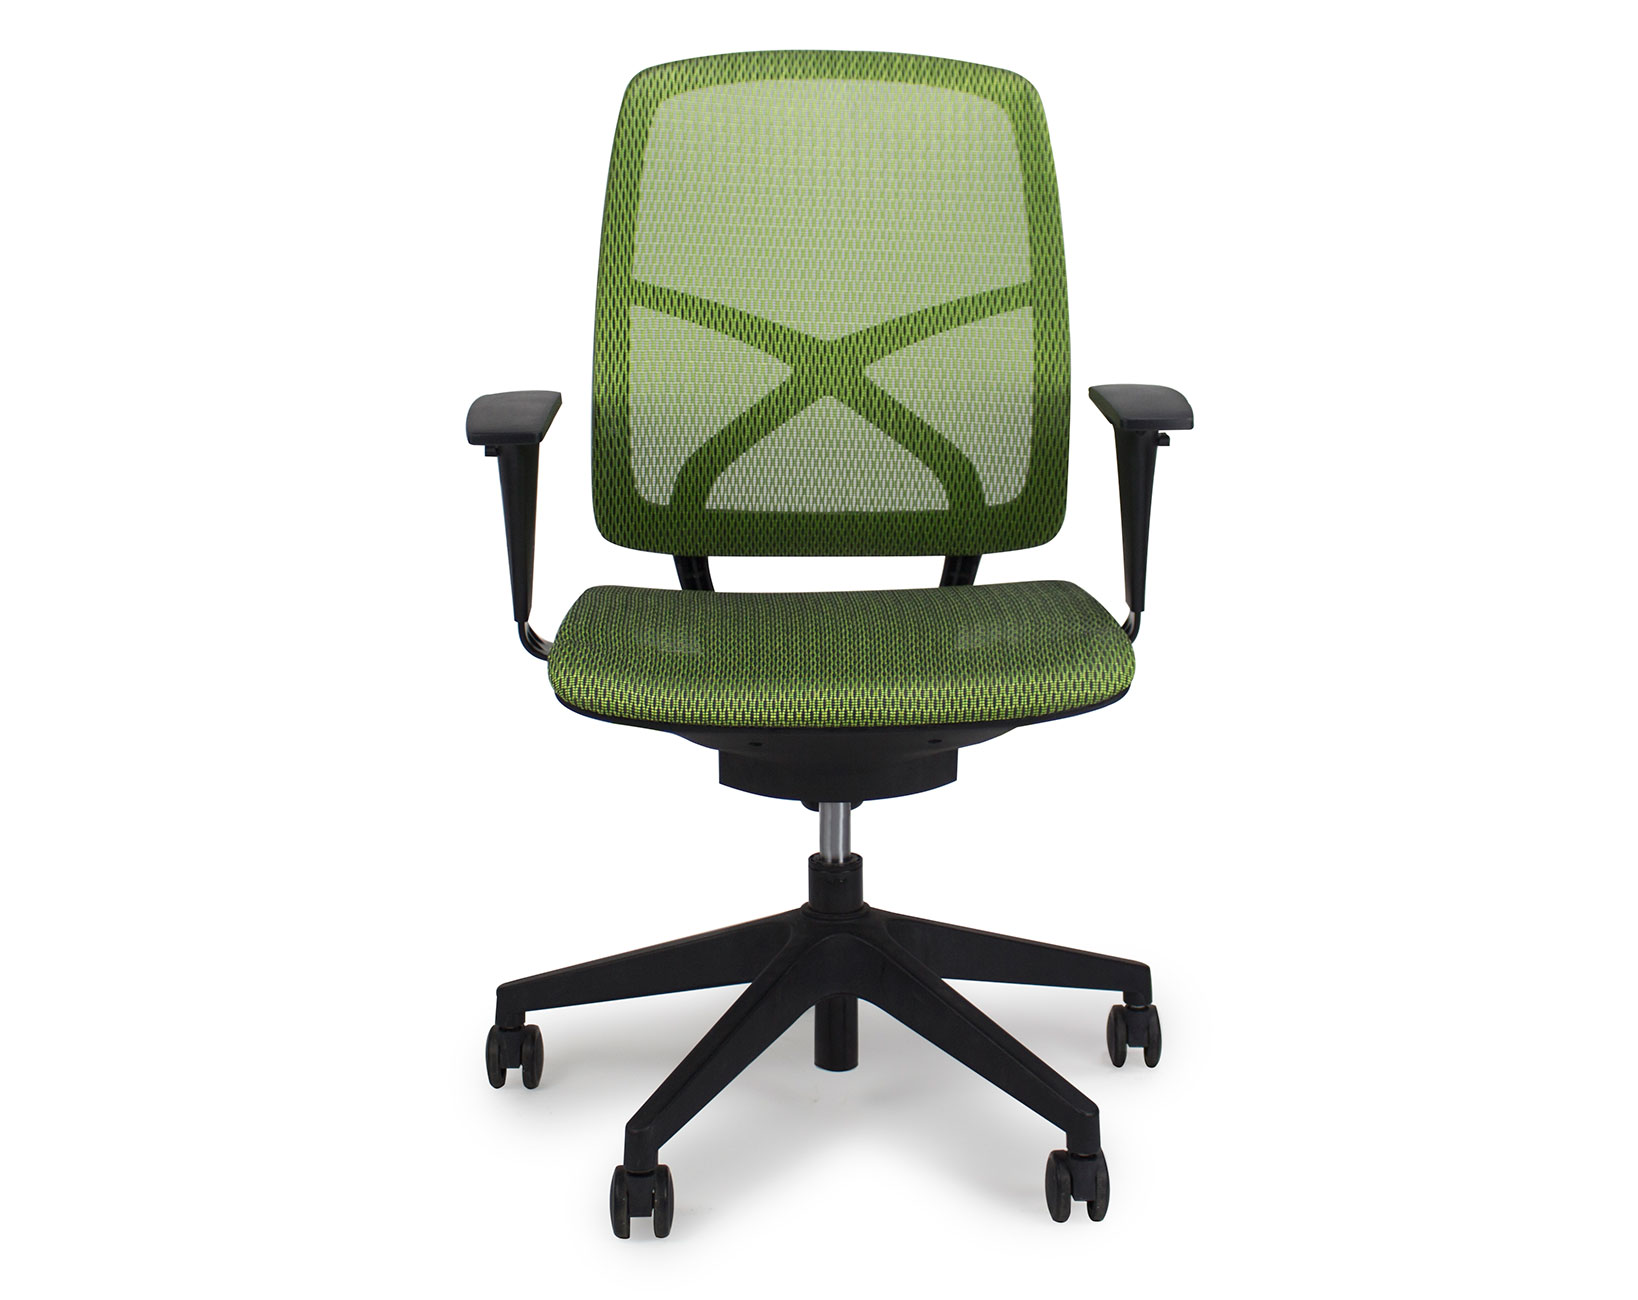 Pixel Chair Green Office Furniture Ethosource